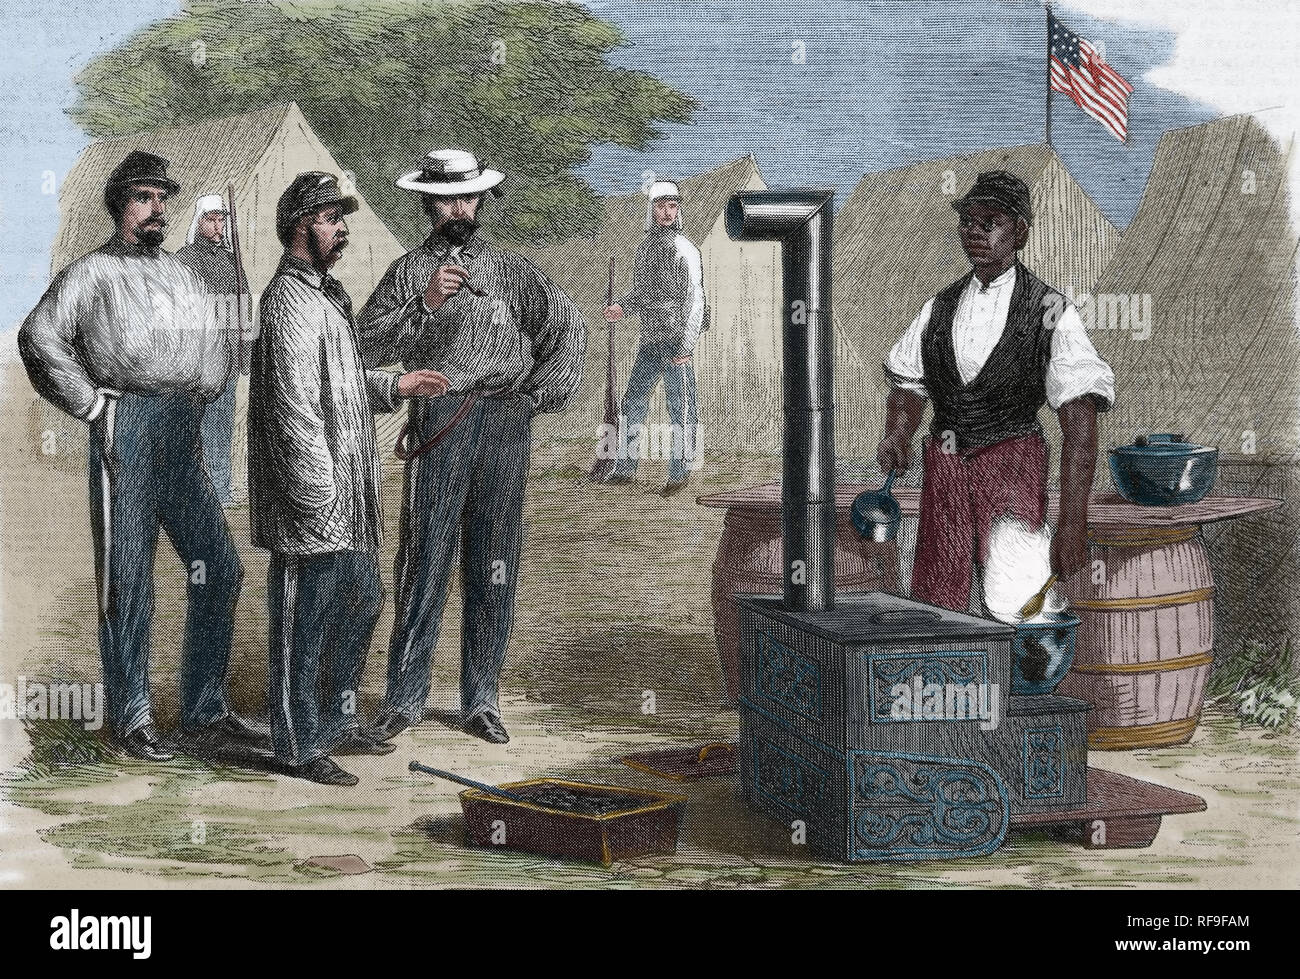 American Civil War. Union Army. Camp kitchen,2nd New York Regiment. Engraving by Fr.Vizetelly - Stock Image